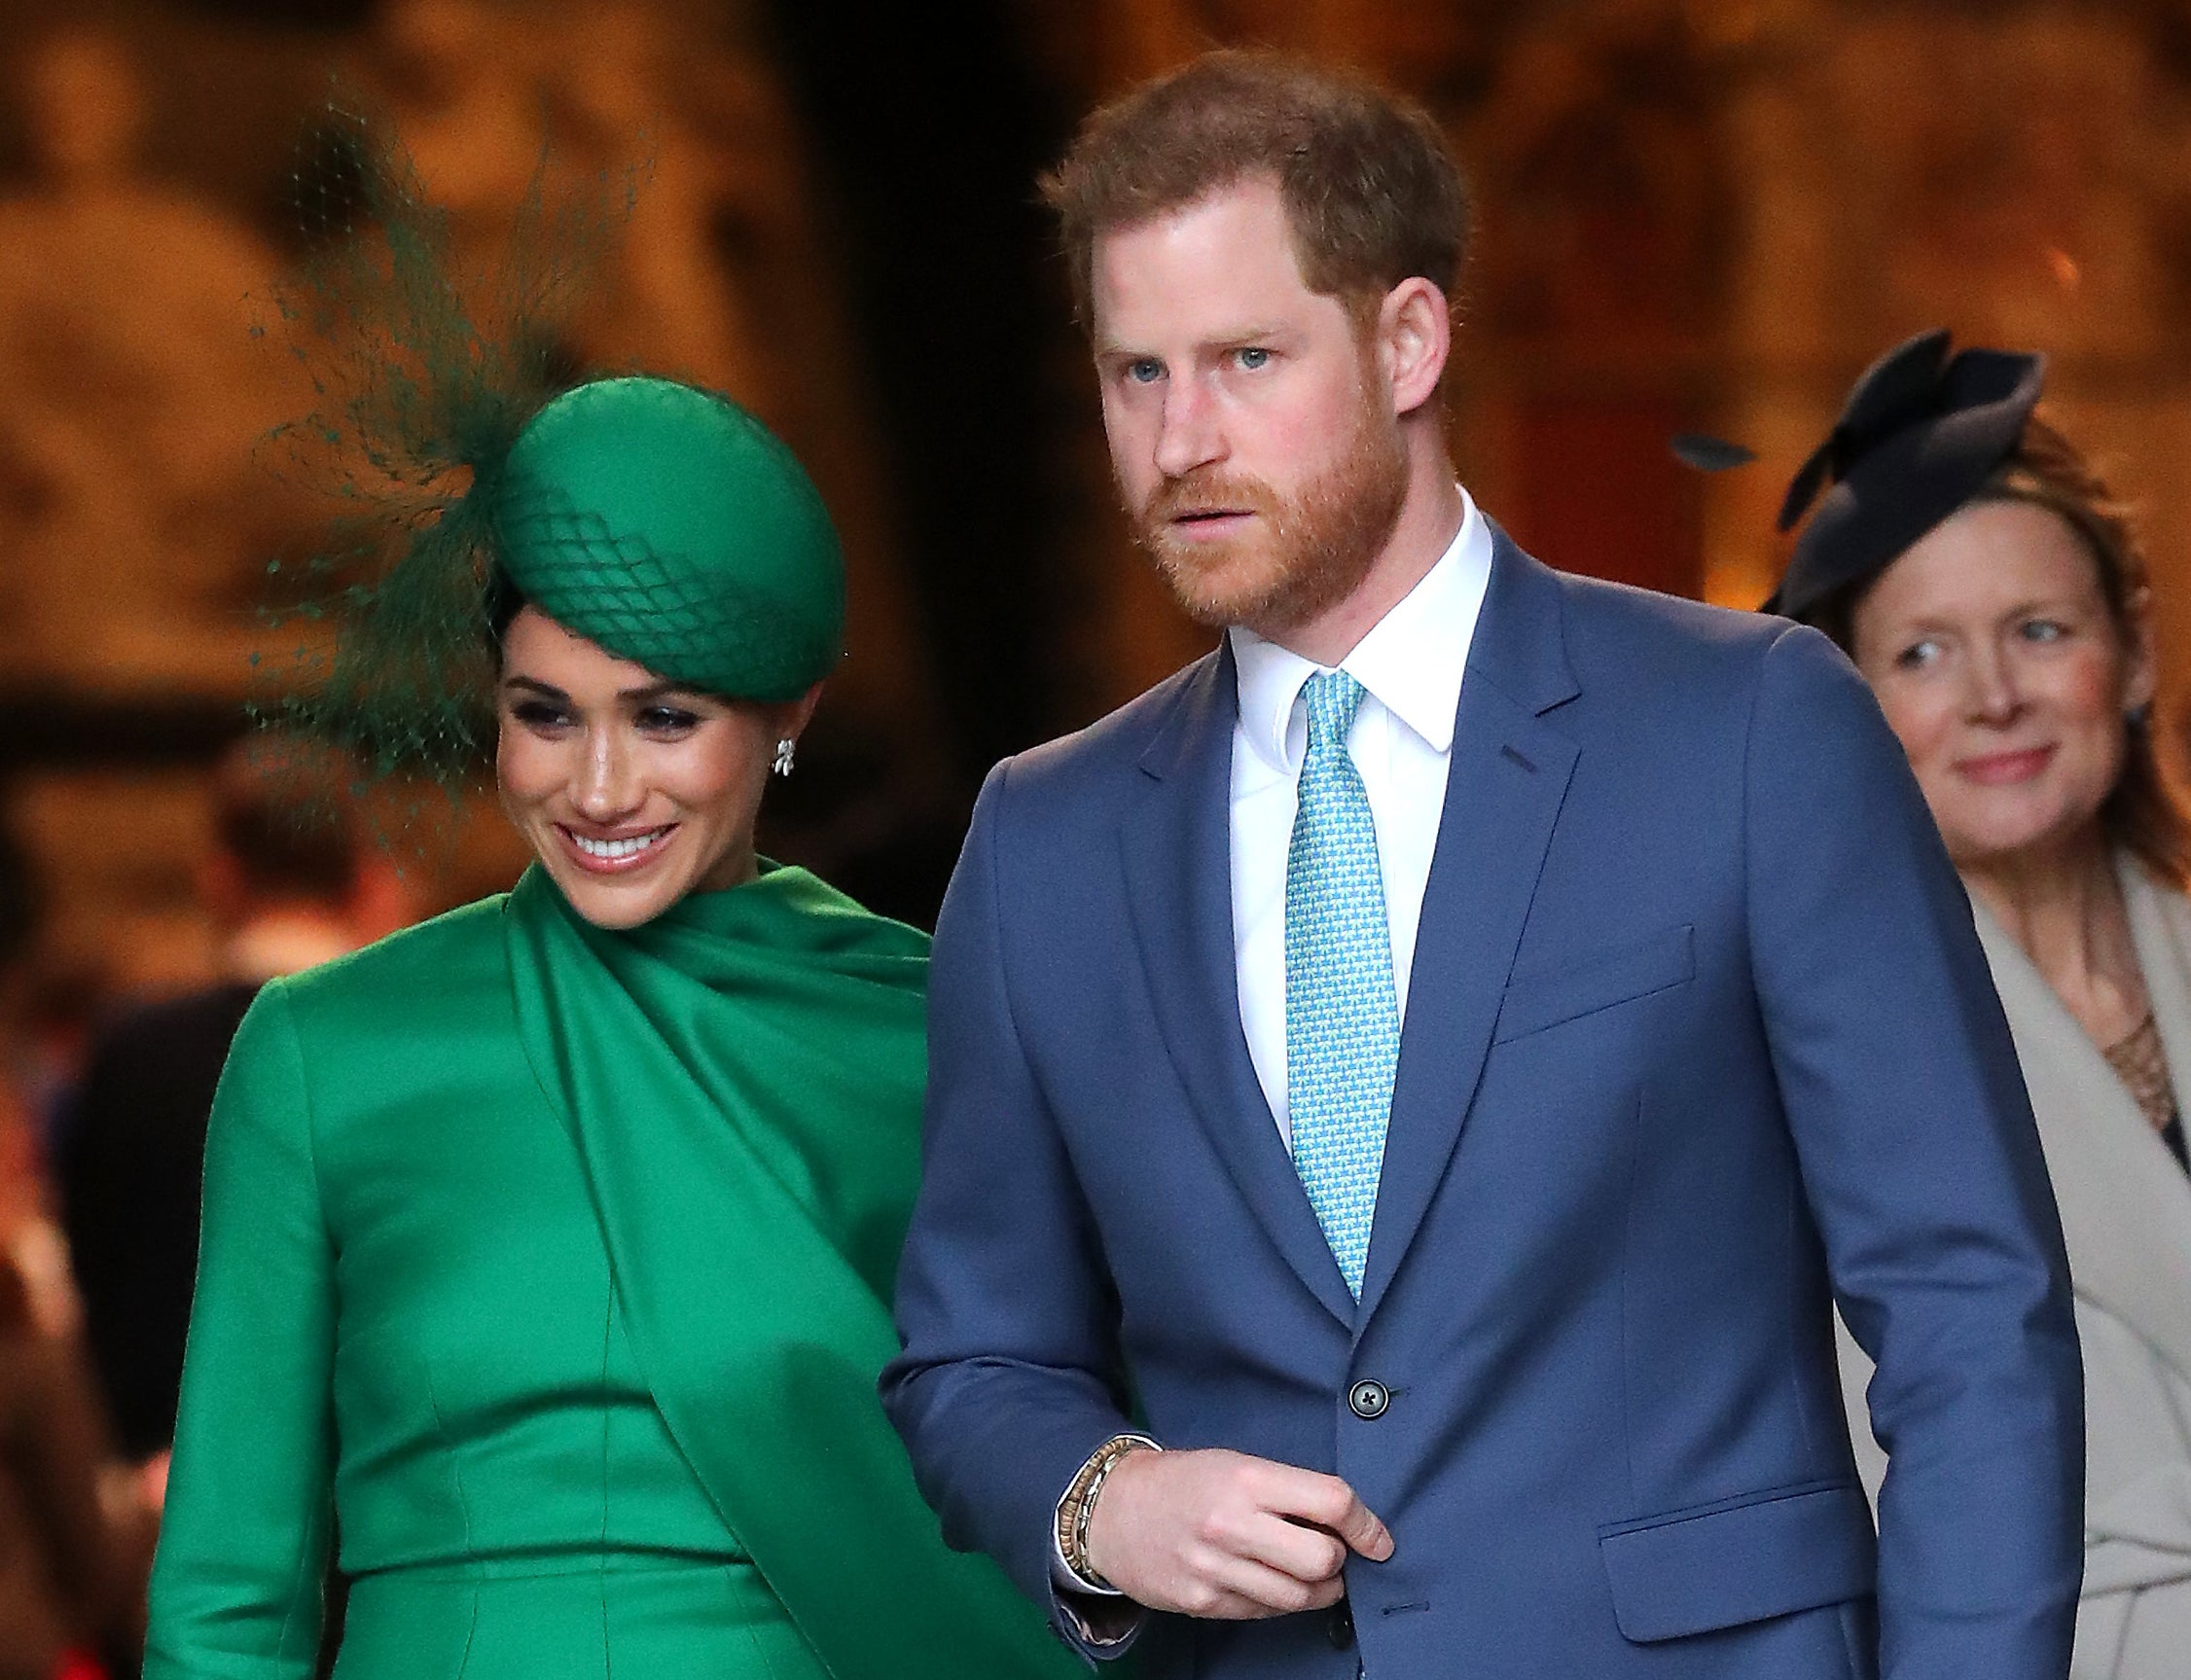 Meghan wears an green dress and hat while walking with Harry